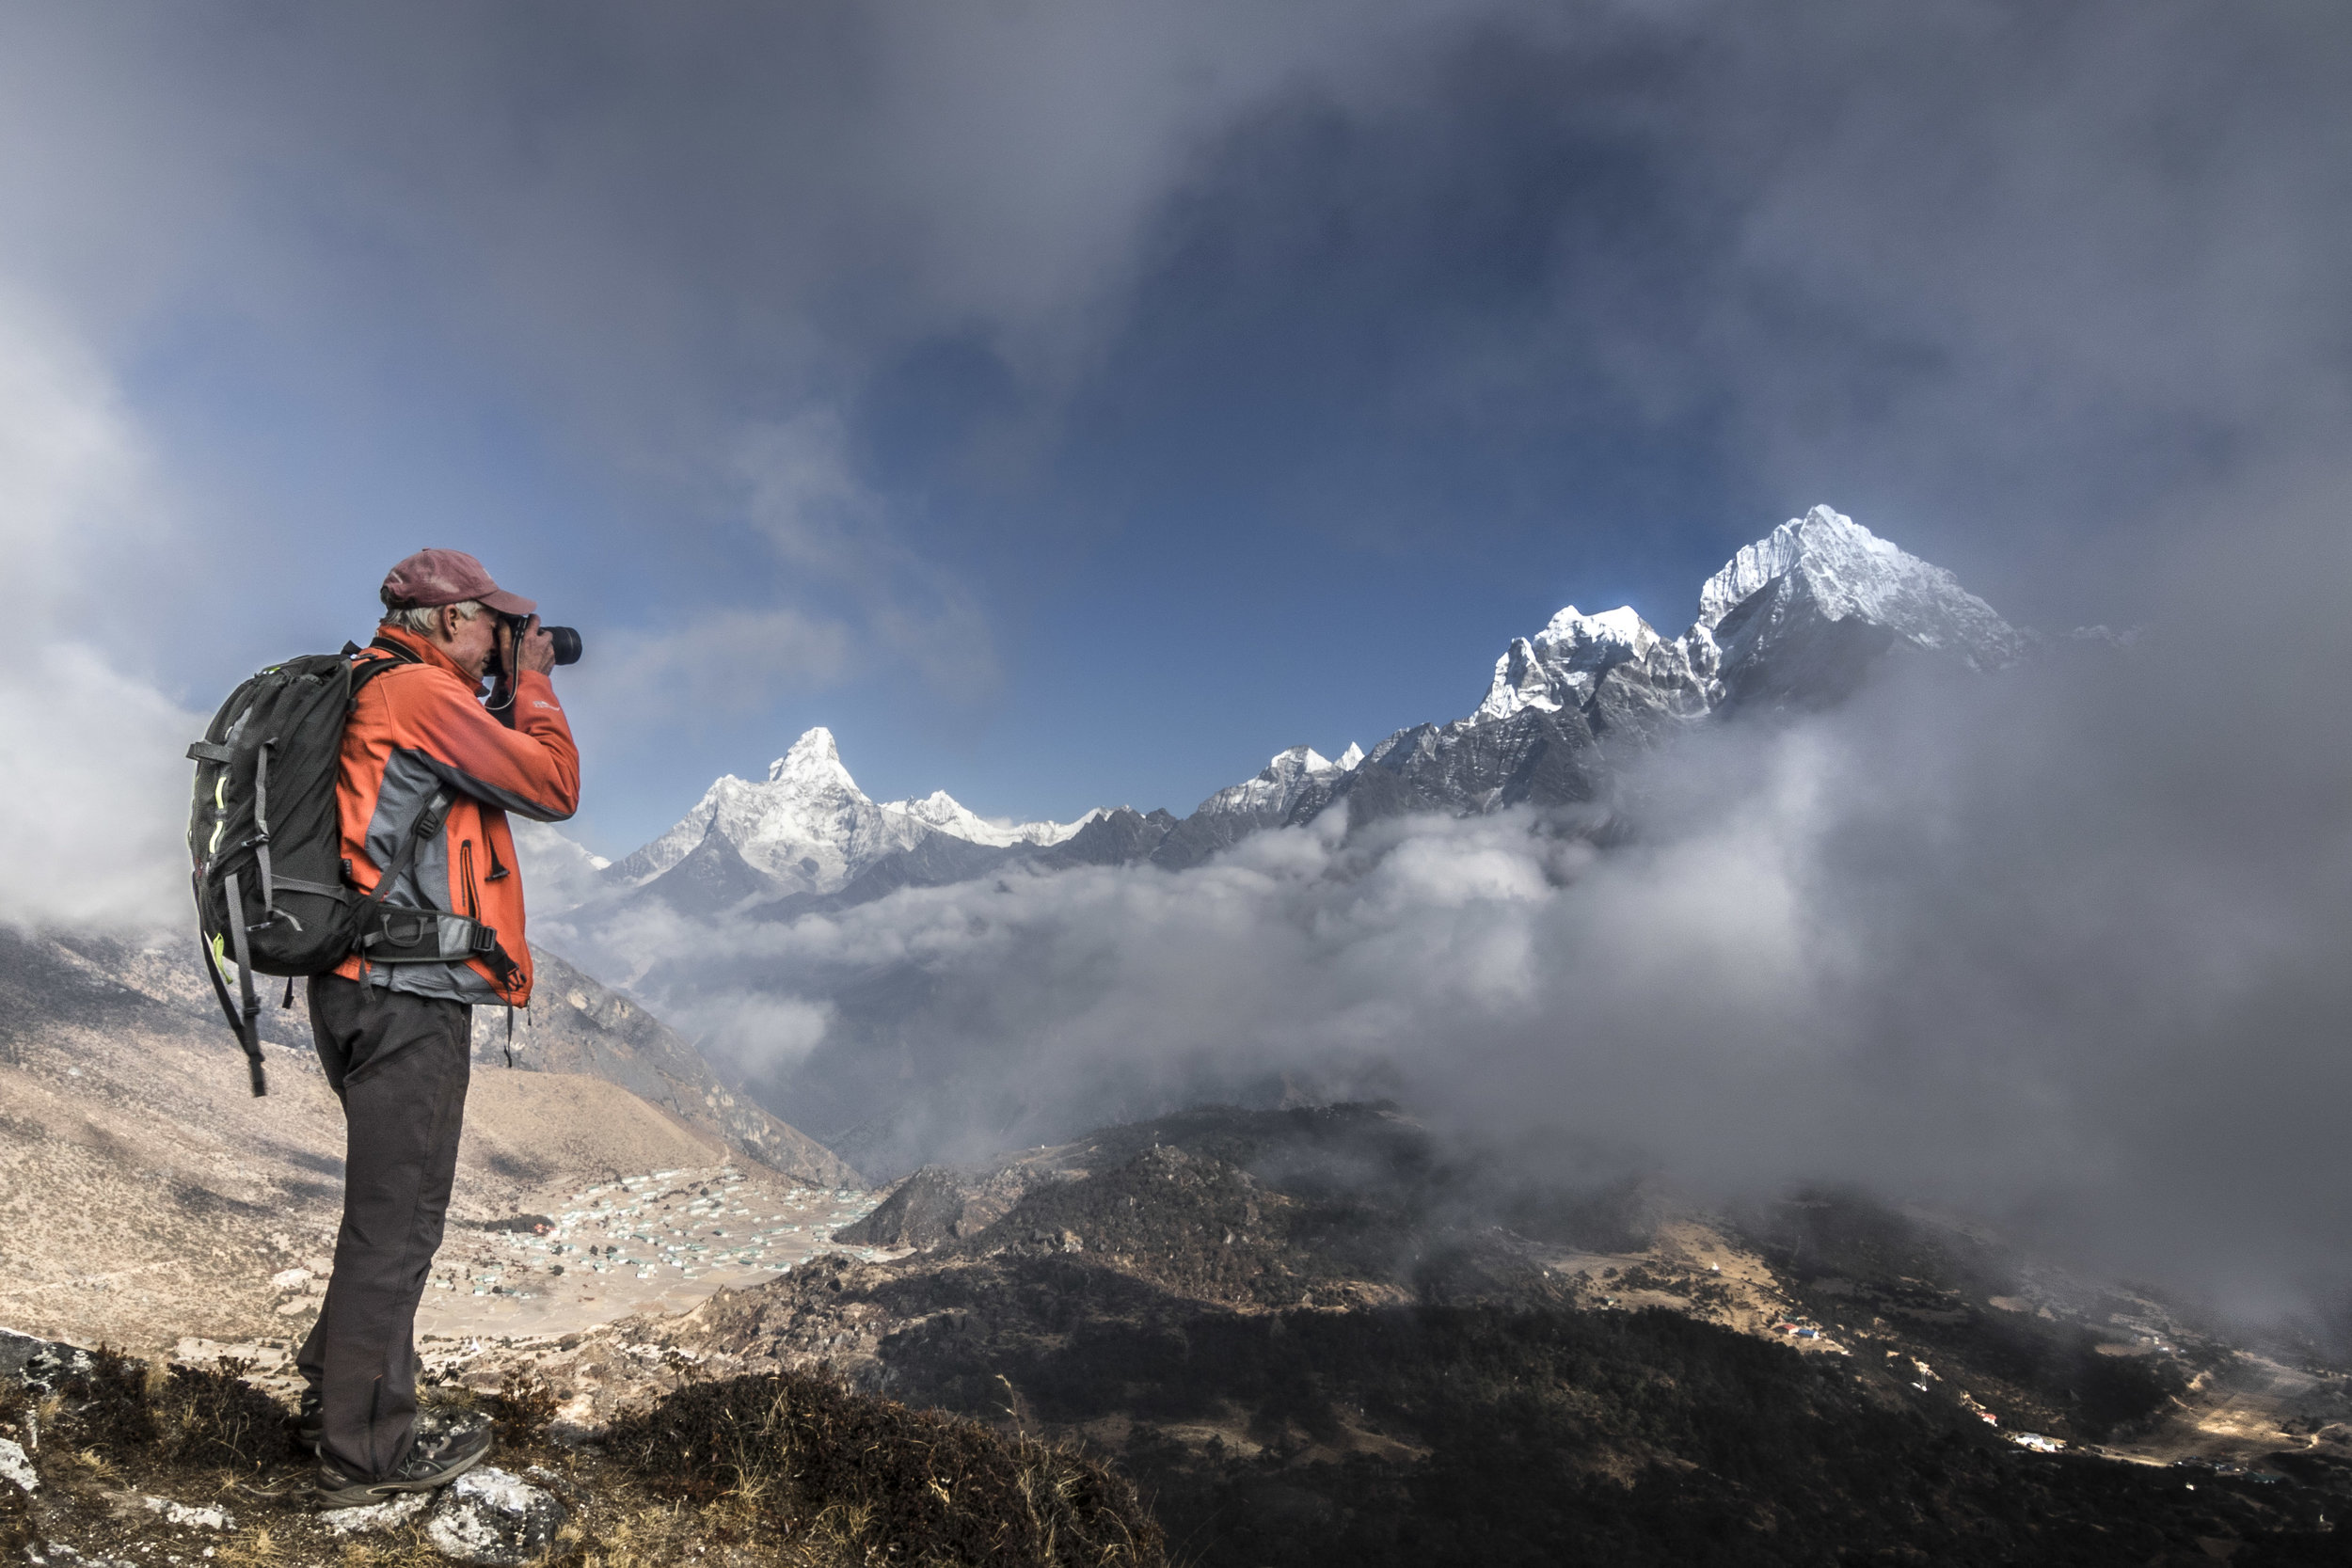 David Breashears photographs the famous mountain view of Ama Dablam and Thamserku from above Namche/Khunde